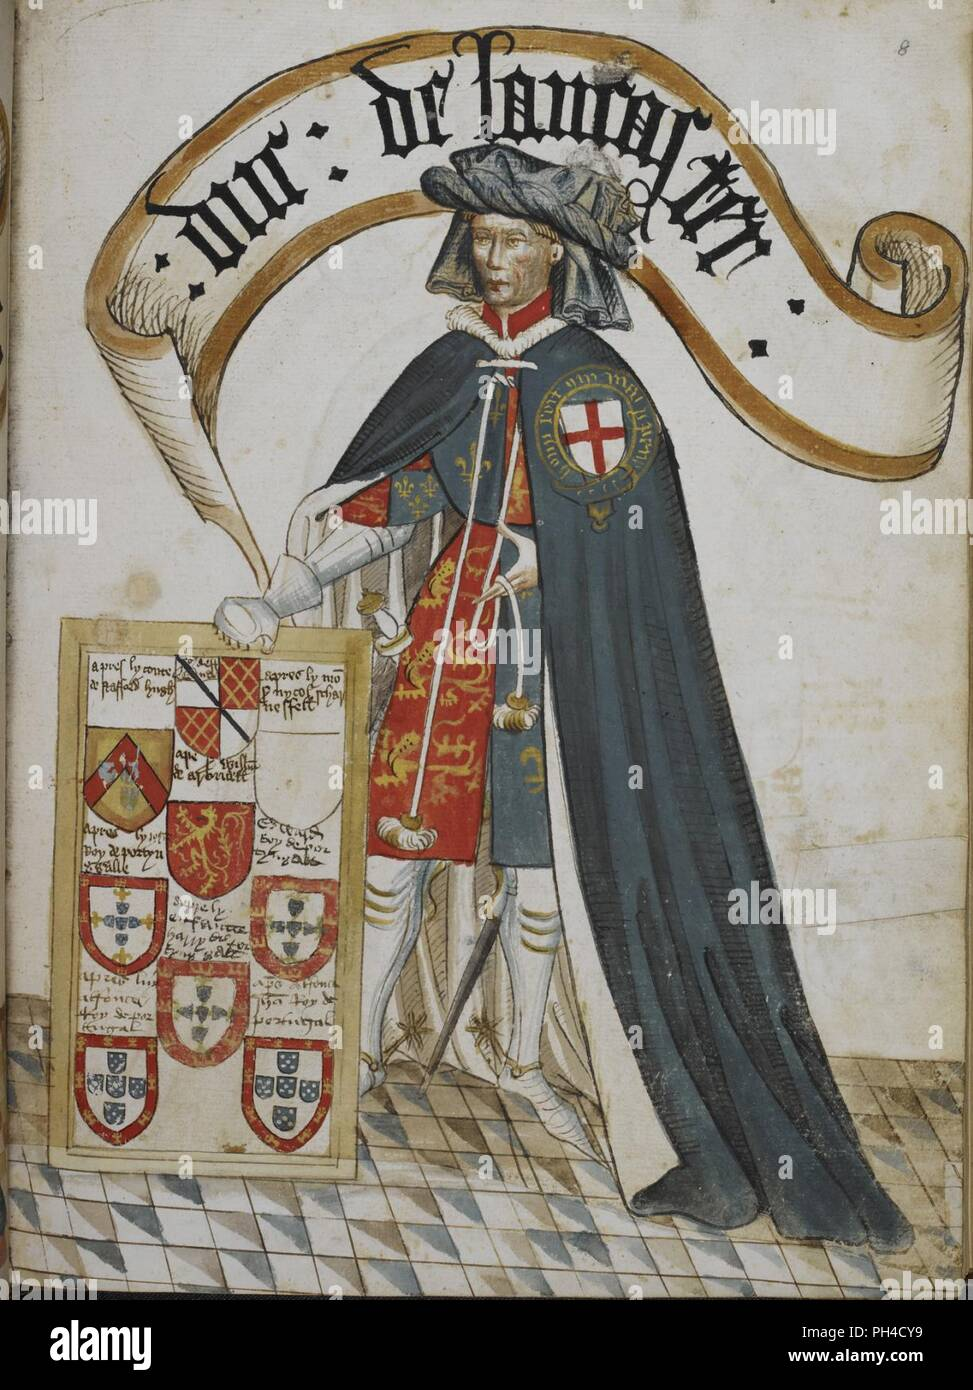 Order Of The Garter Stock Photos Images Spoon Fork Ub 2 Blue Diamond William Brugess Book Portrait Henry Duke Lancaster A Knight